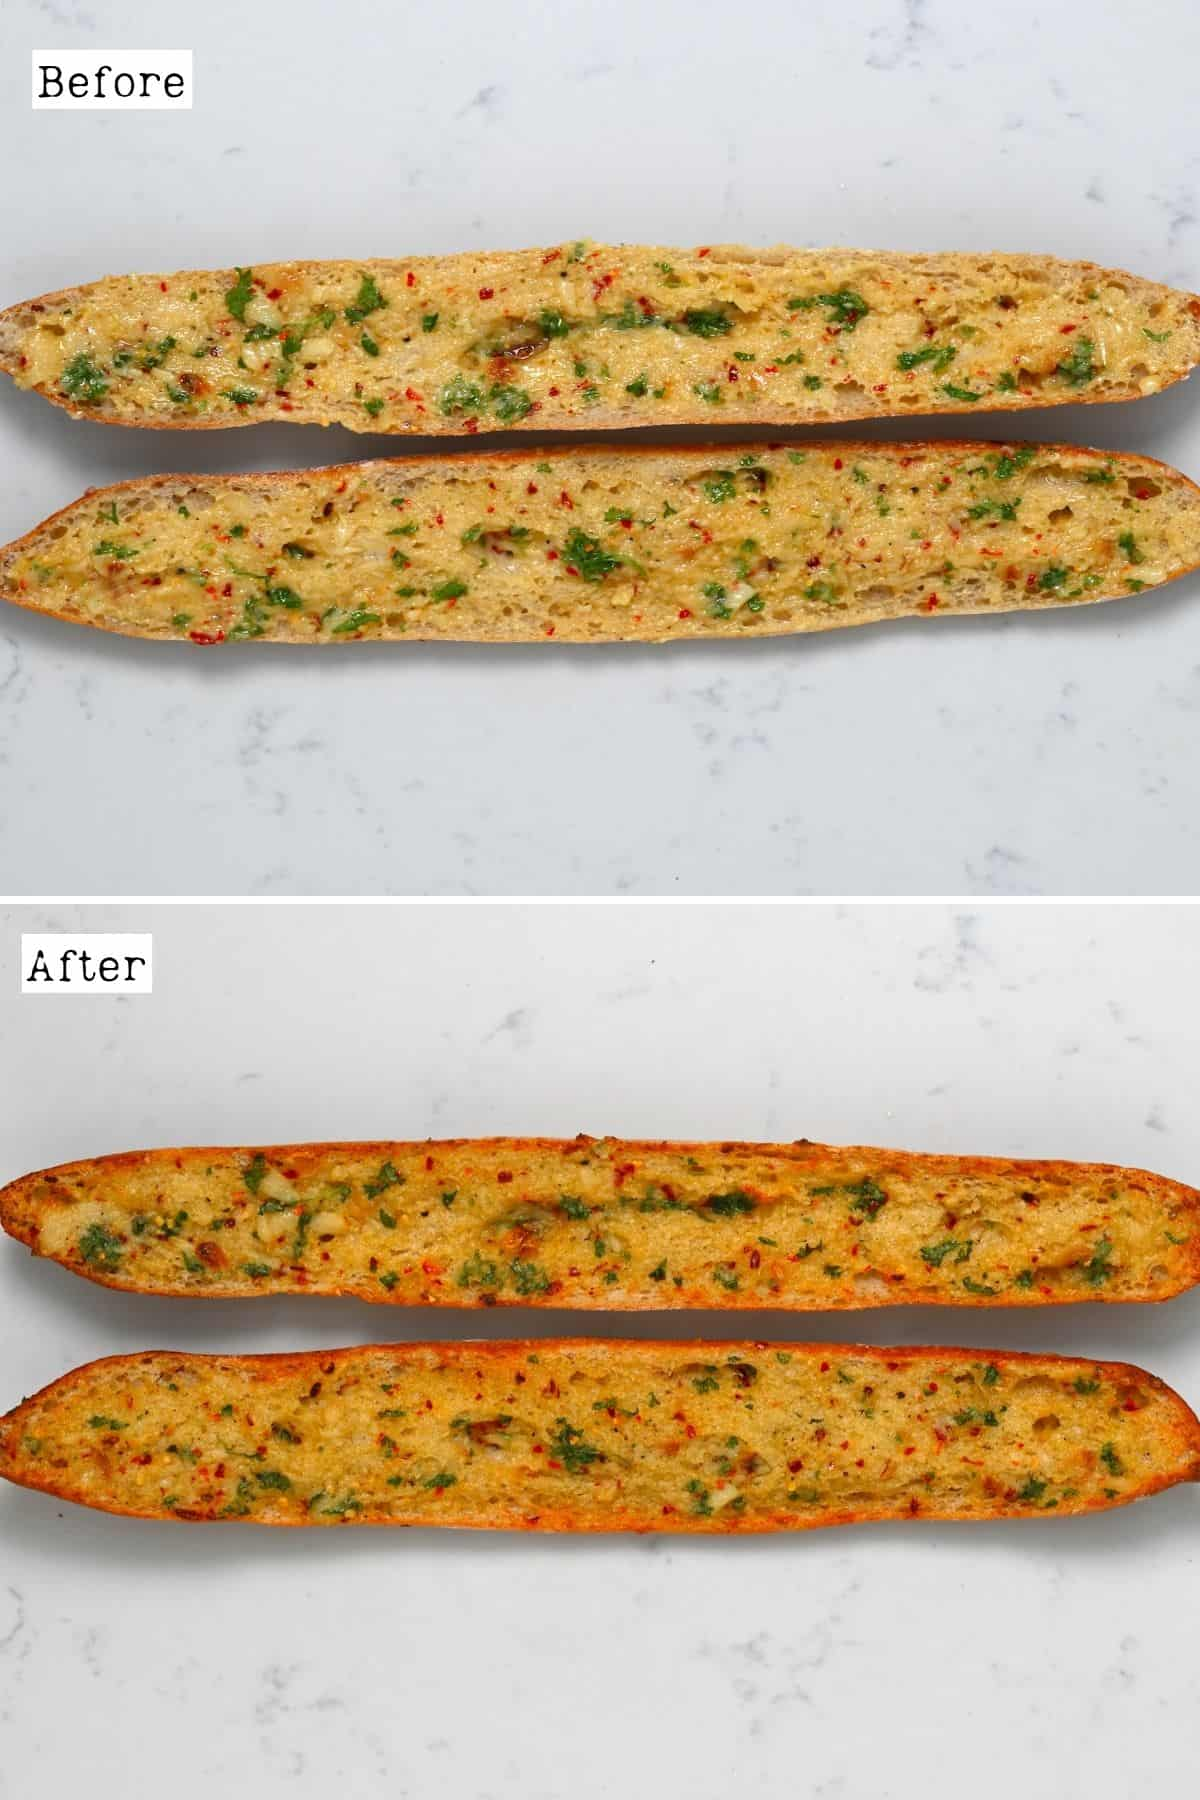 Before and after roasting garlic bread